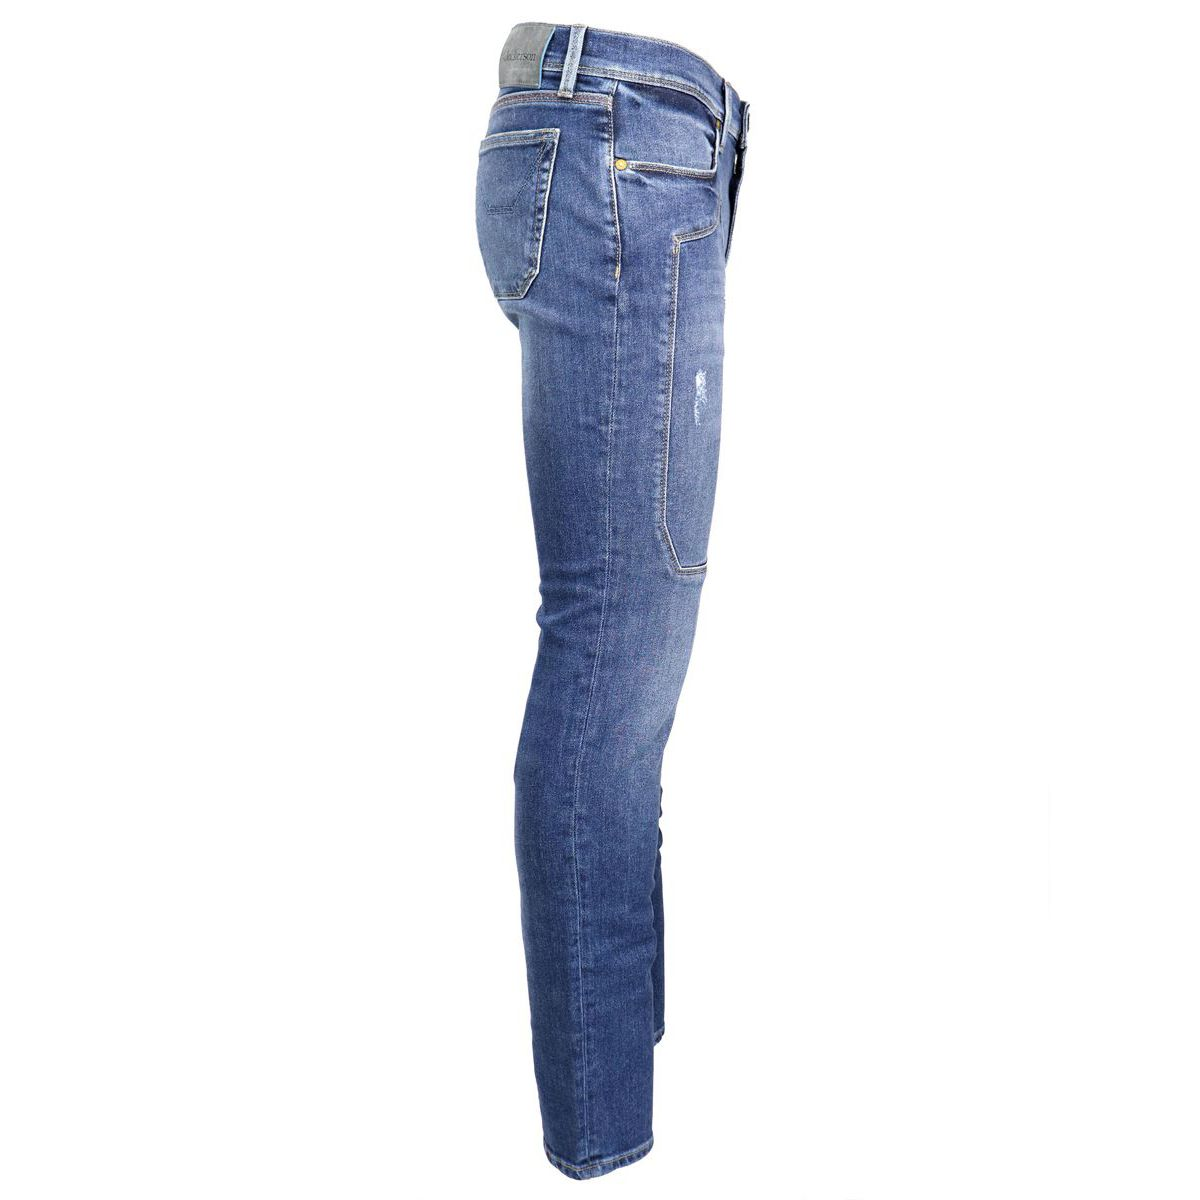 Slim jeans with 5 patch pockets Denim Jeckerson